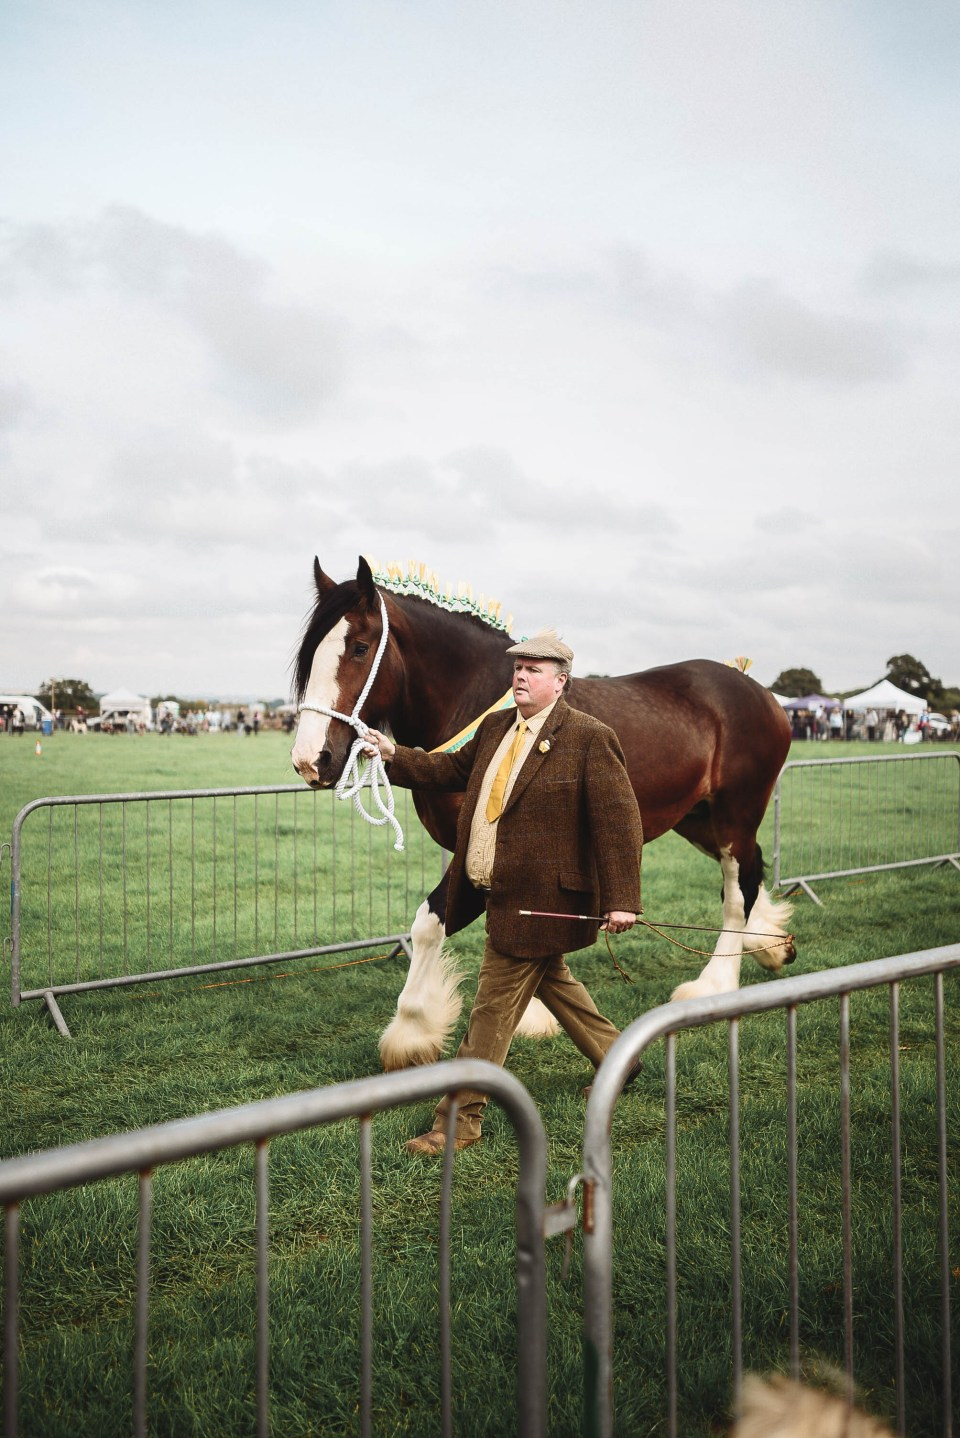 Wessex Heavy Horse Show in the English Countryside